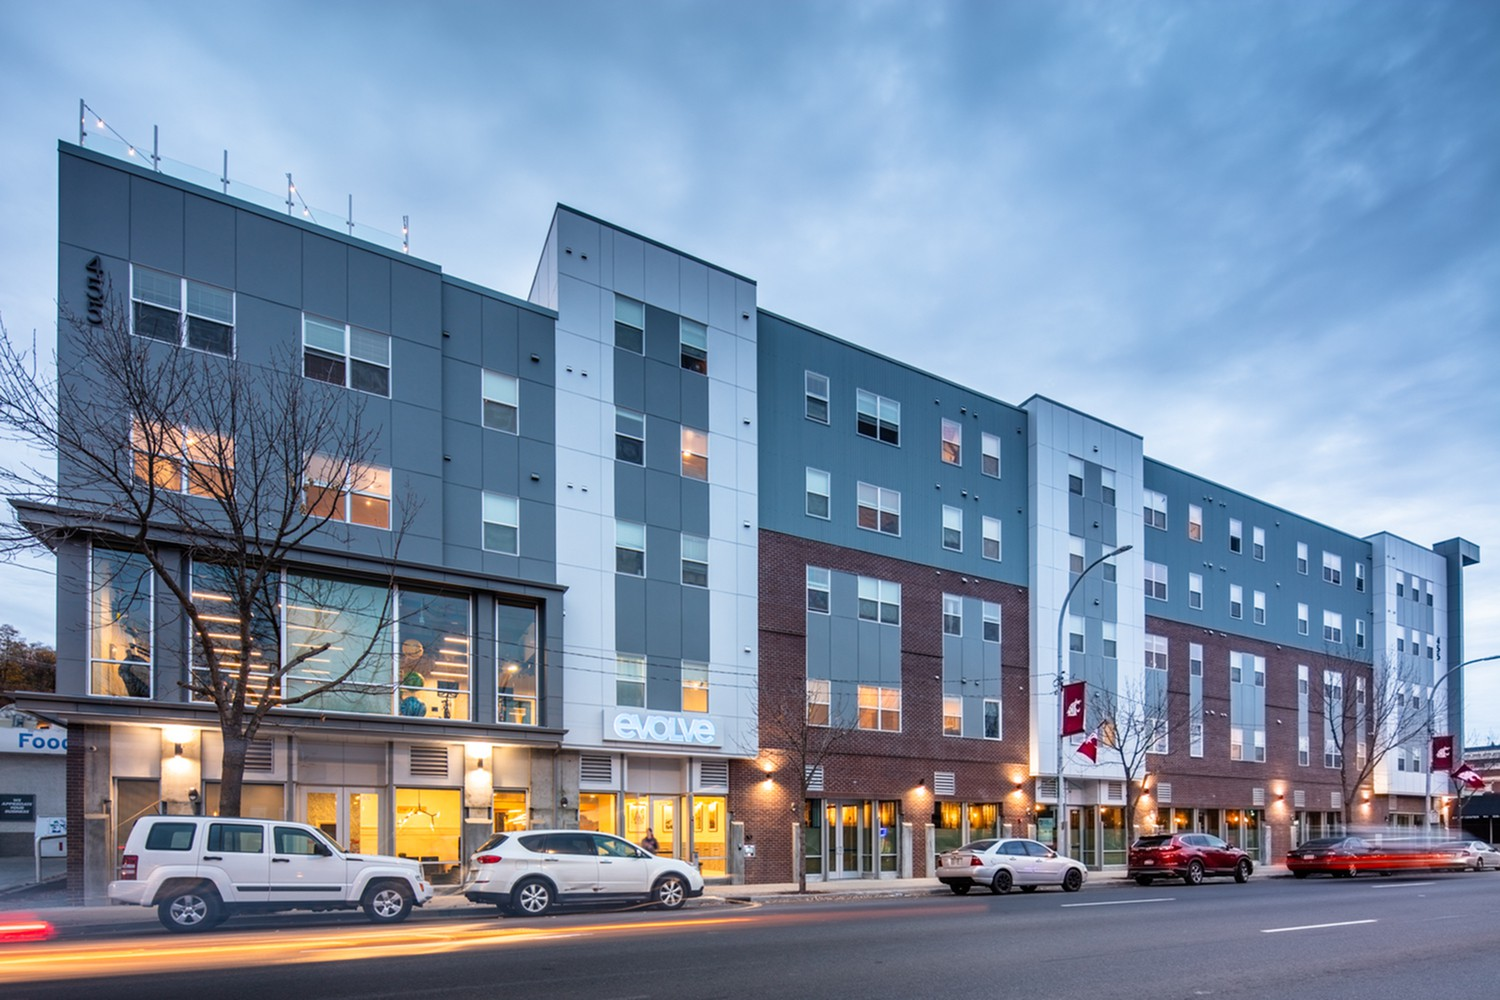 Apartments Near University of Idaho Student Housing - Evolve on Main for University of Idaho Students in Moscow, ID